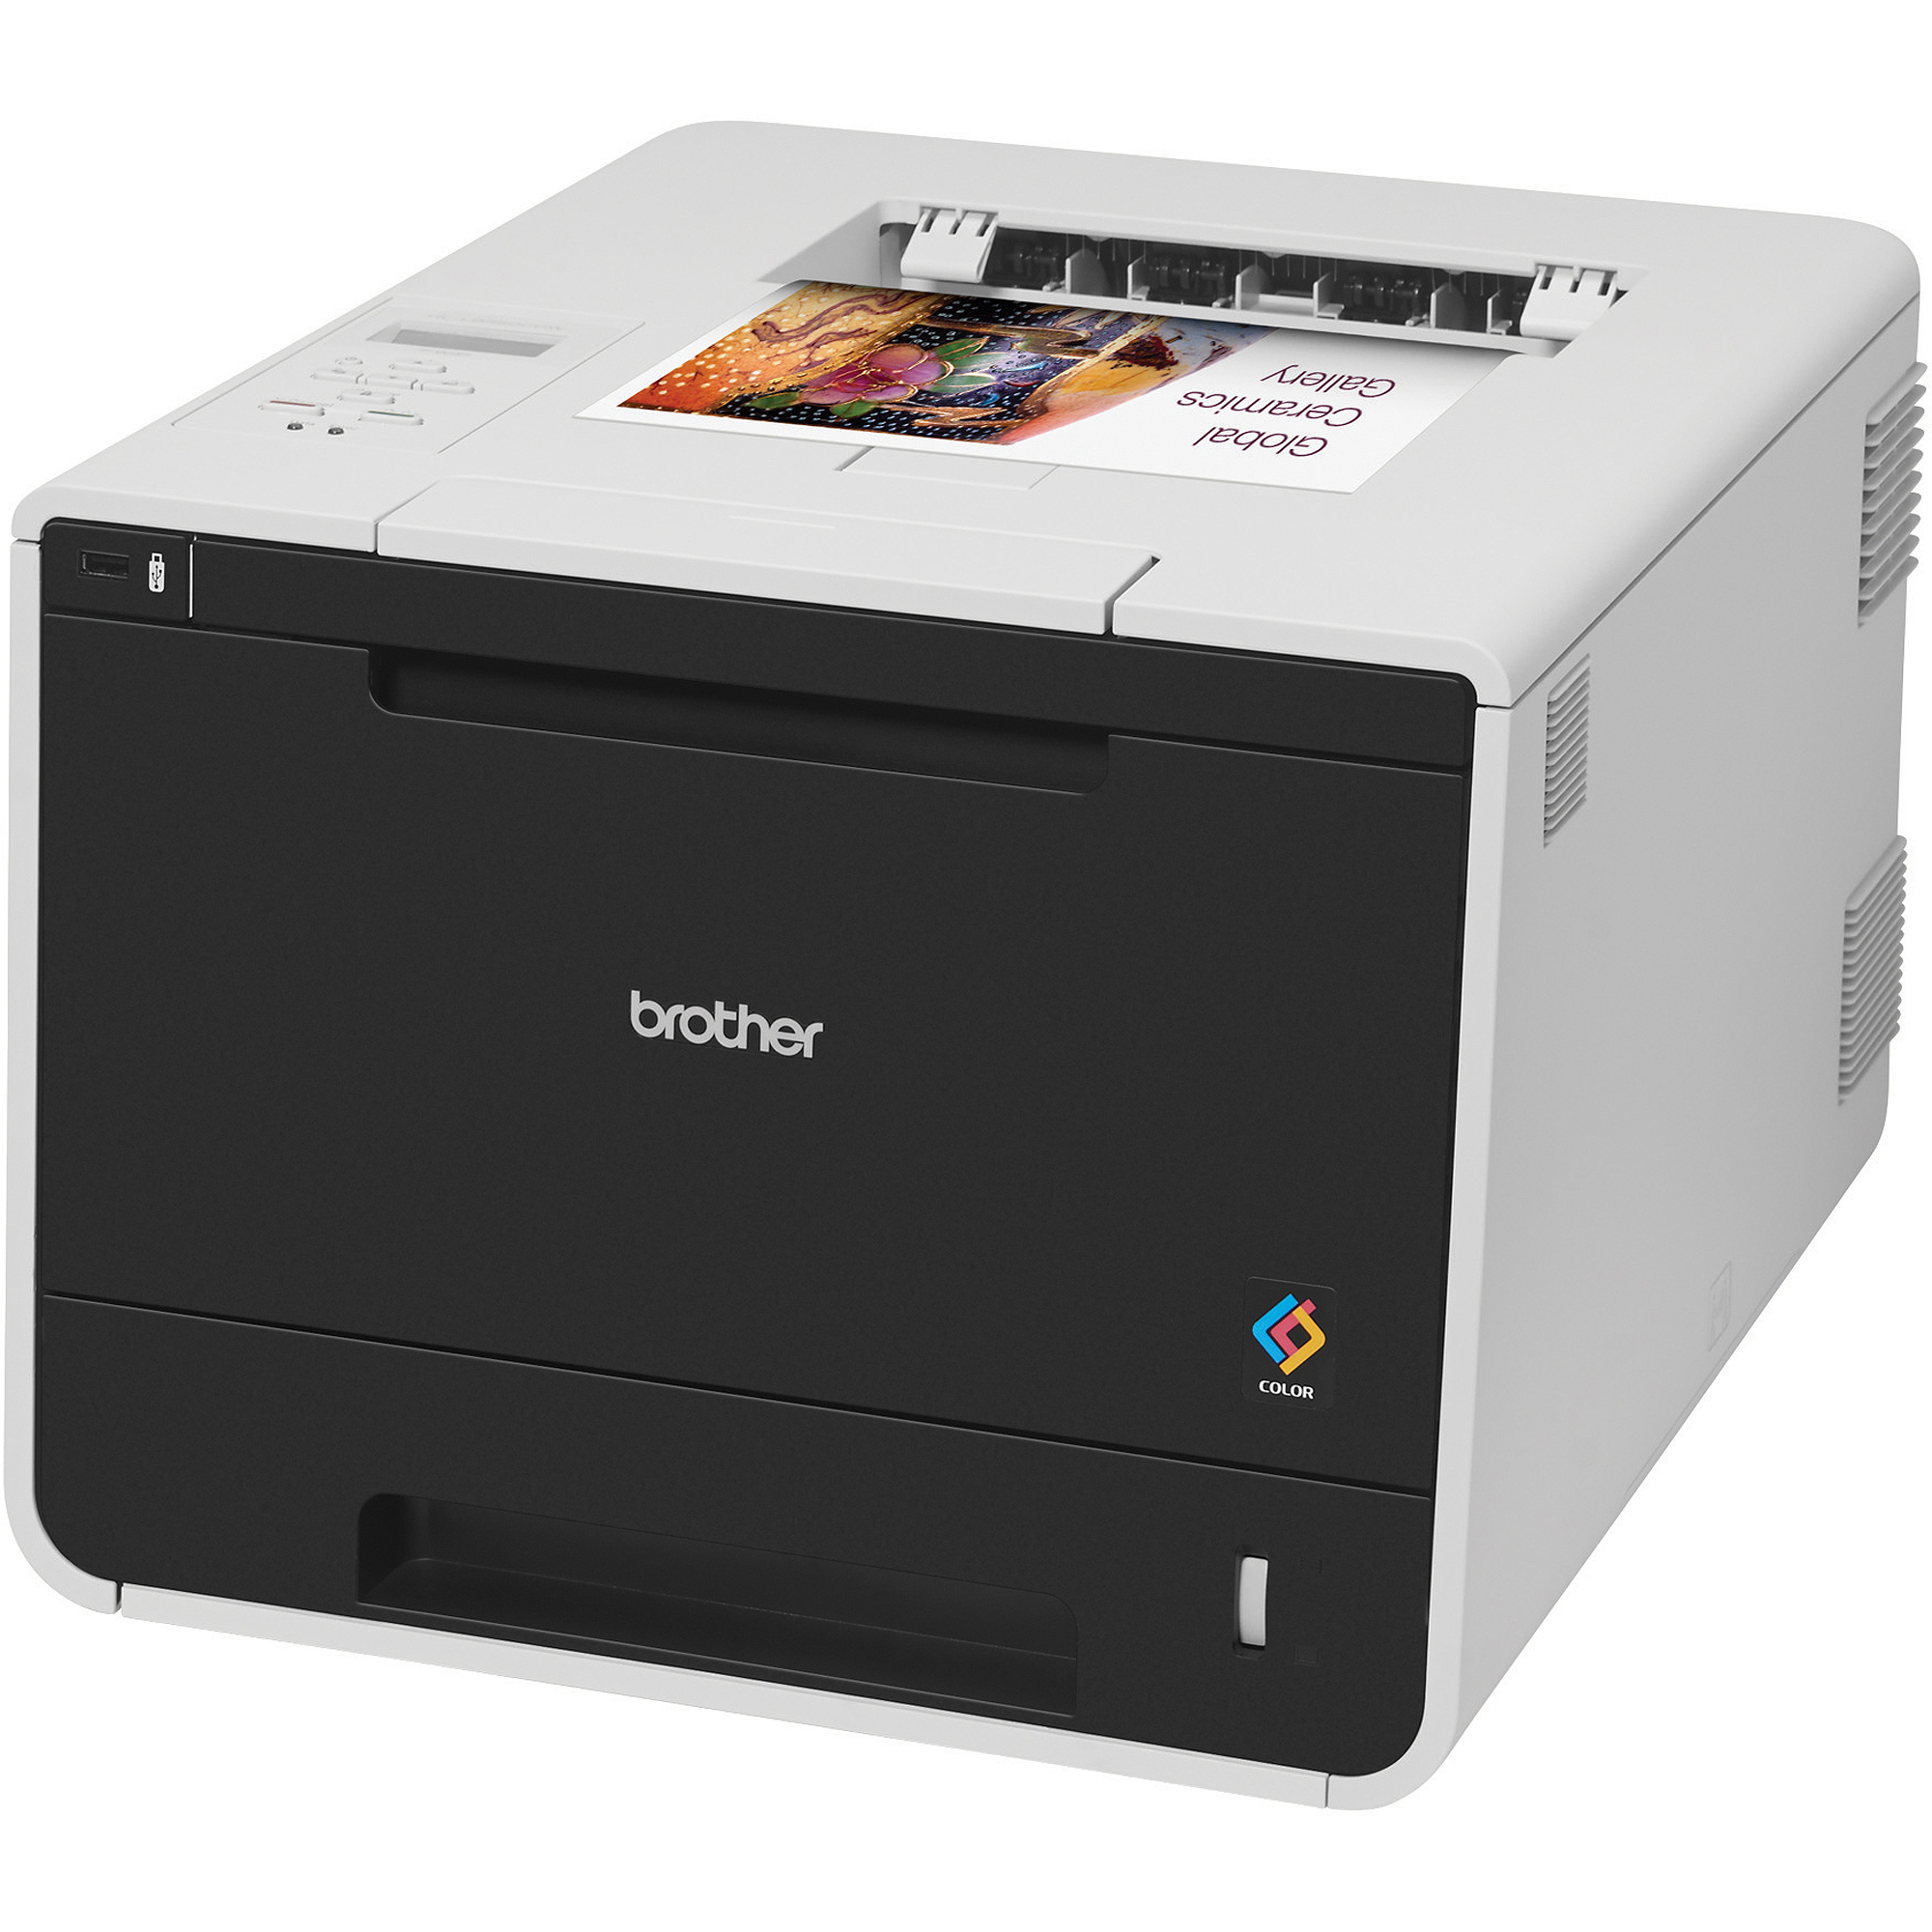 Color printers laser - Brother Hl 3180cdw Wireless Digital Color Multifunction Printer Copy Print Scan Walmart Com